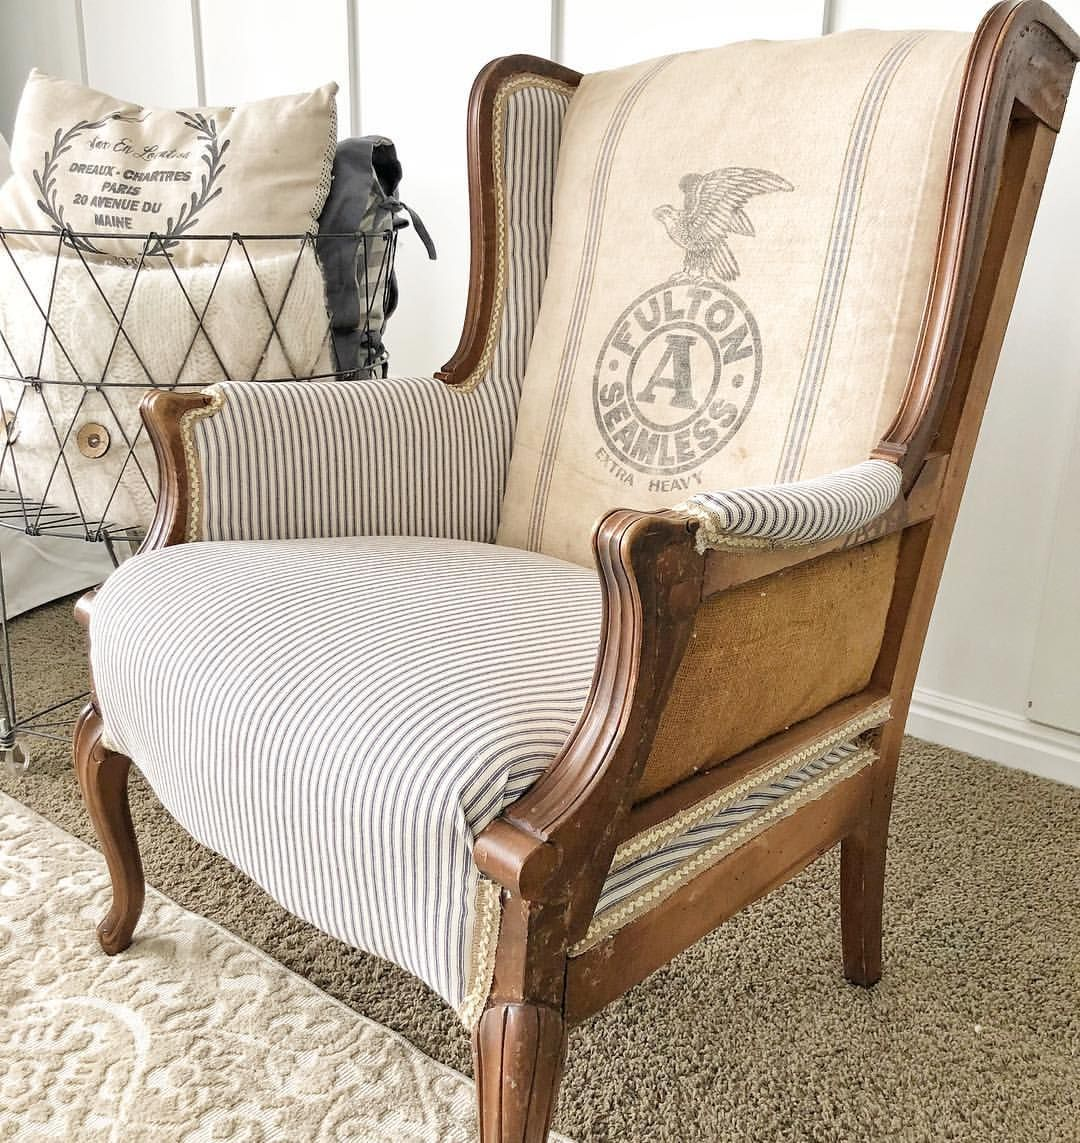 Deconstructed Wingback Chair Using A Grain Sack And Ticking Fabric Deconstructed Chair Upholstered Furniture Furniture